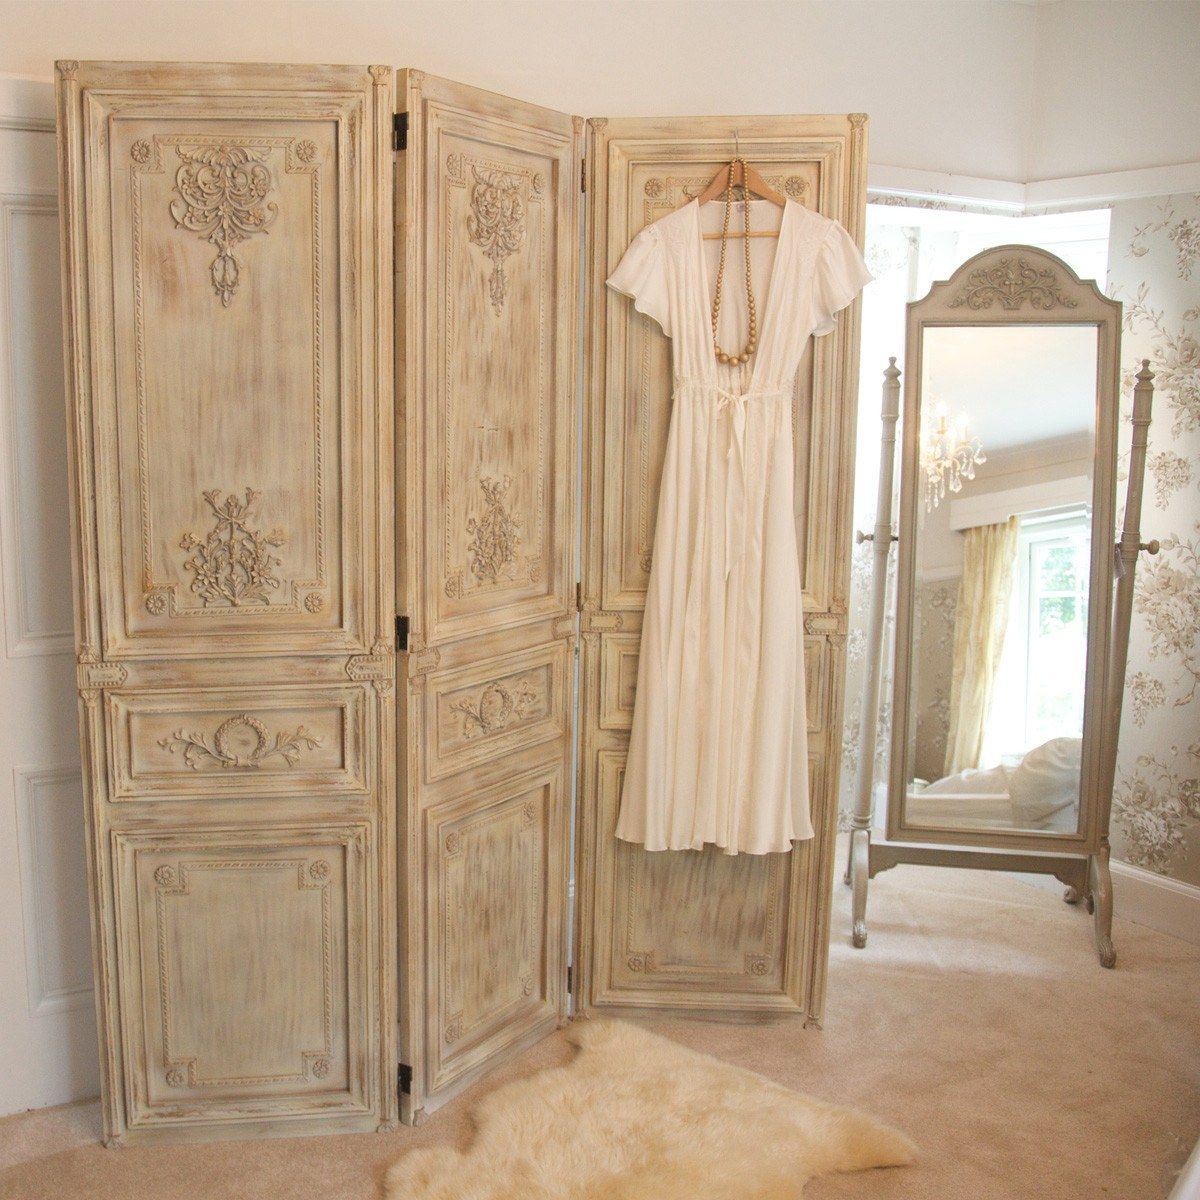 Limed Wooden Dressing Screen Room Divider Home Industrial